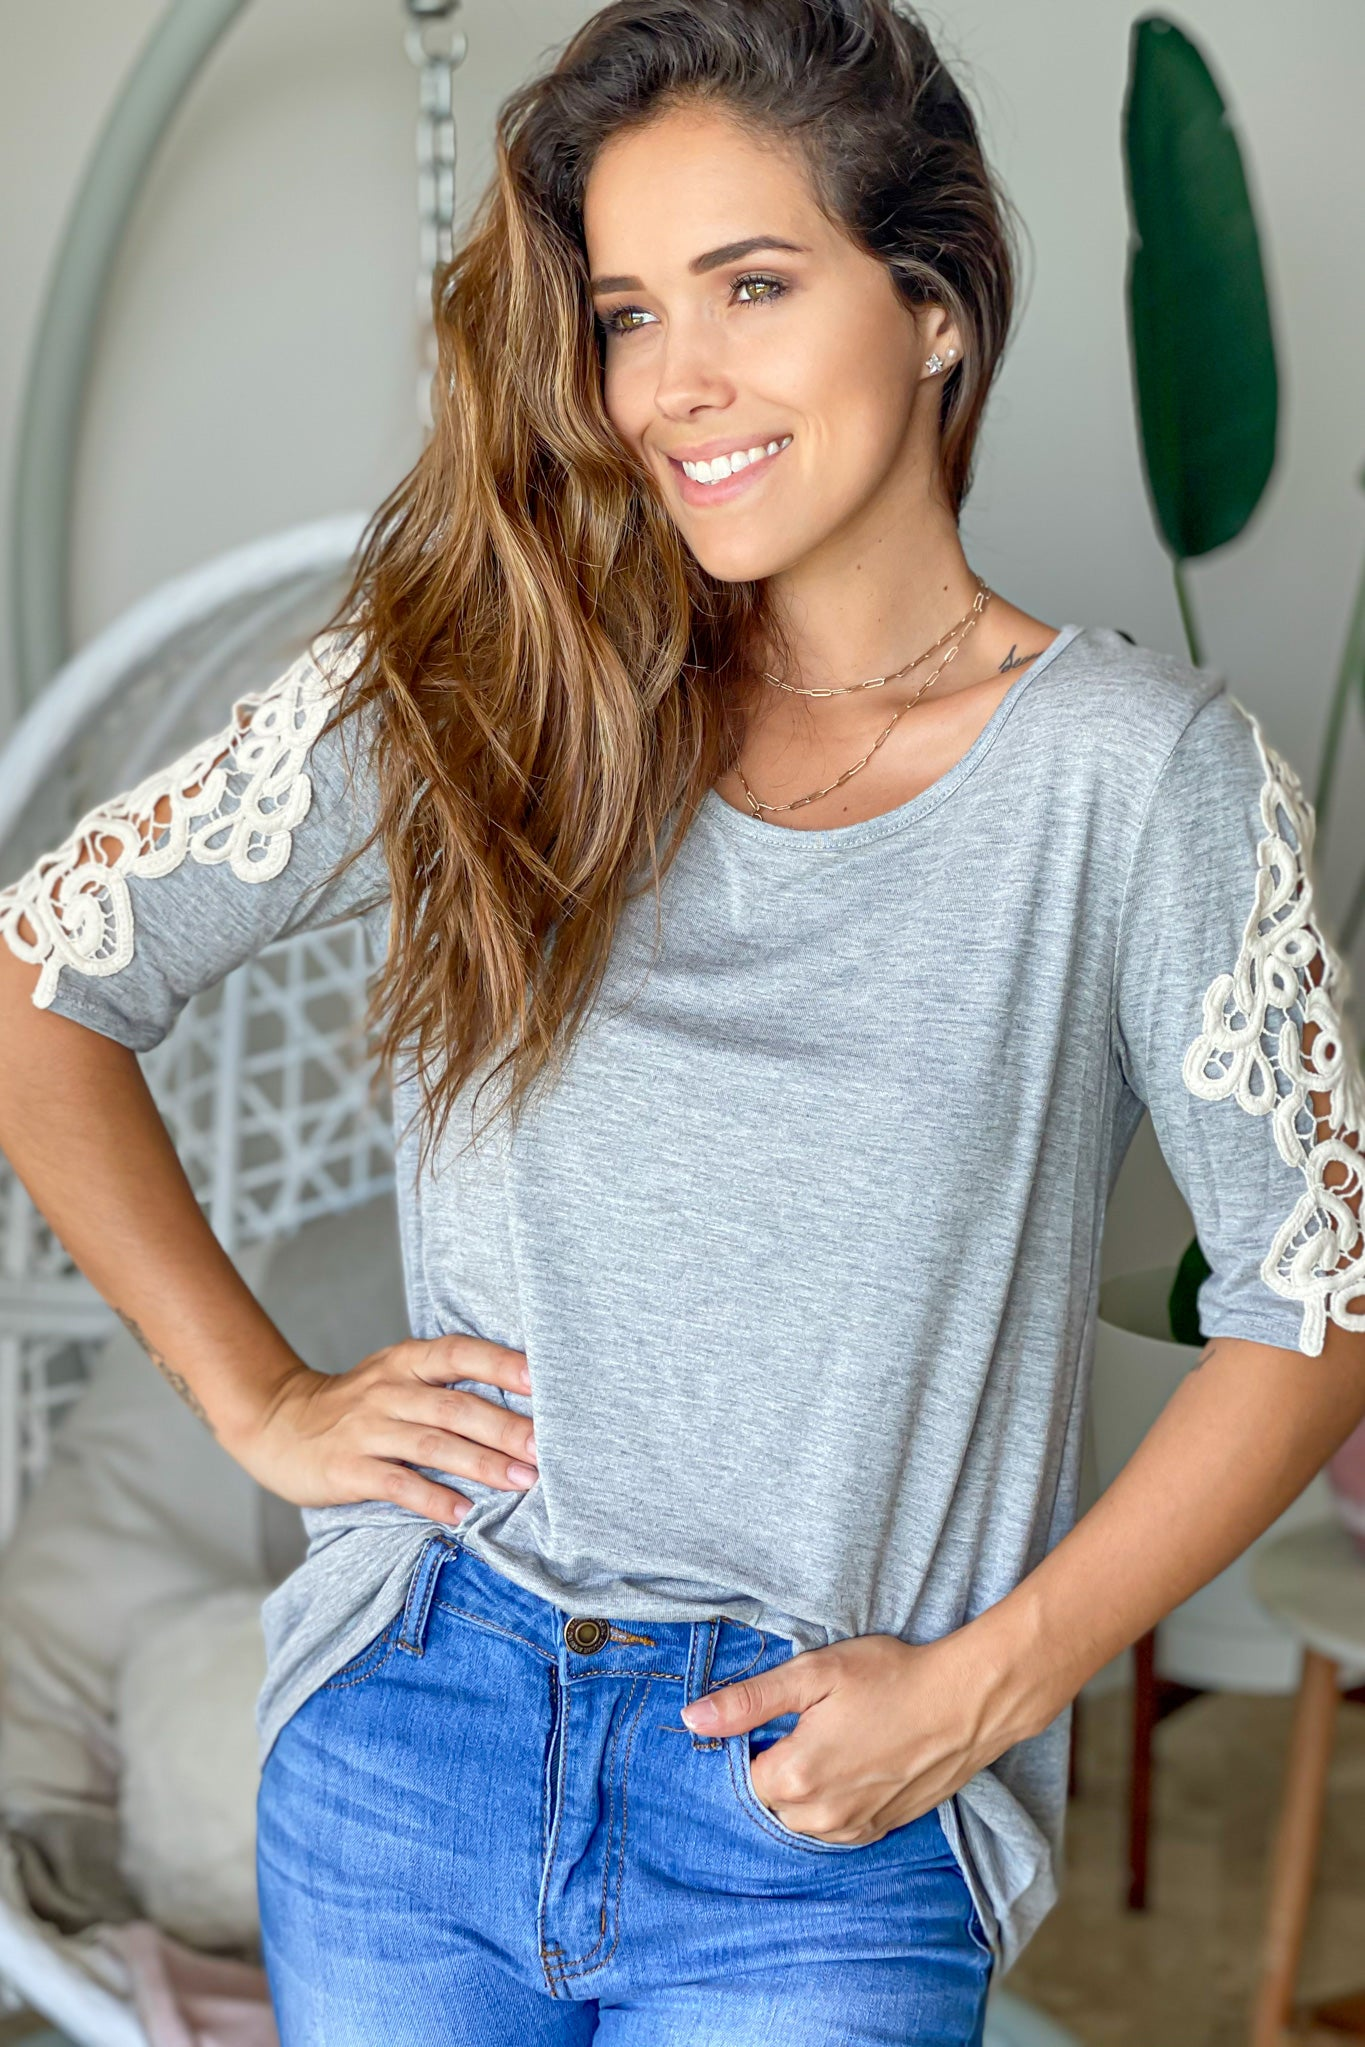 Lifestyle heather gray top with crochet sleeves